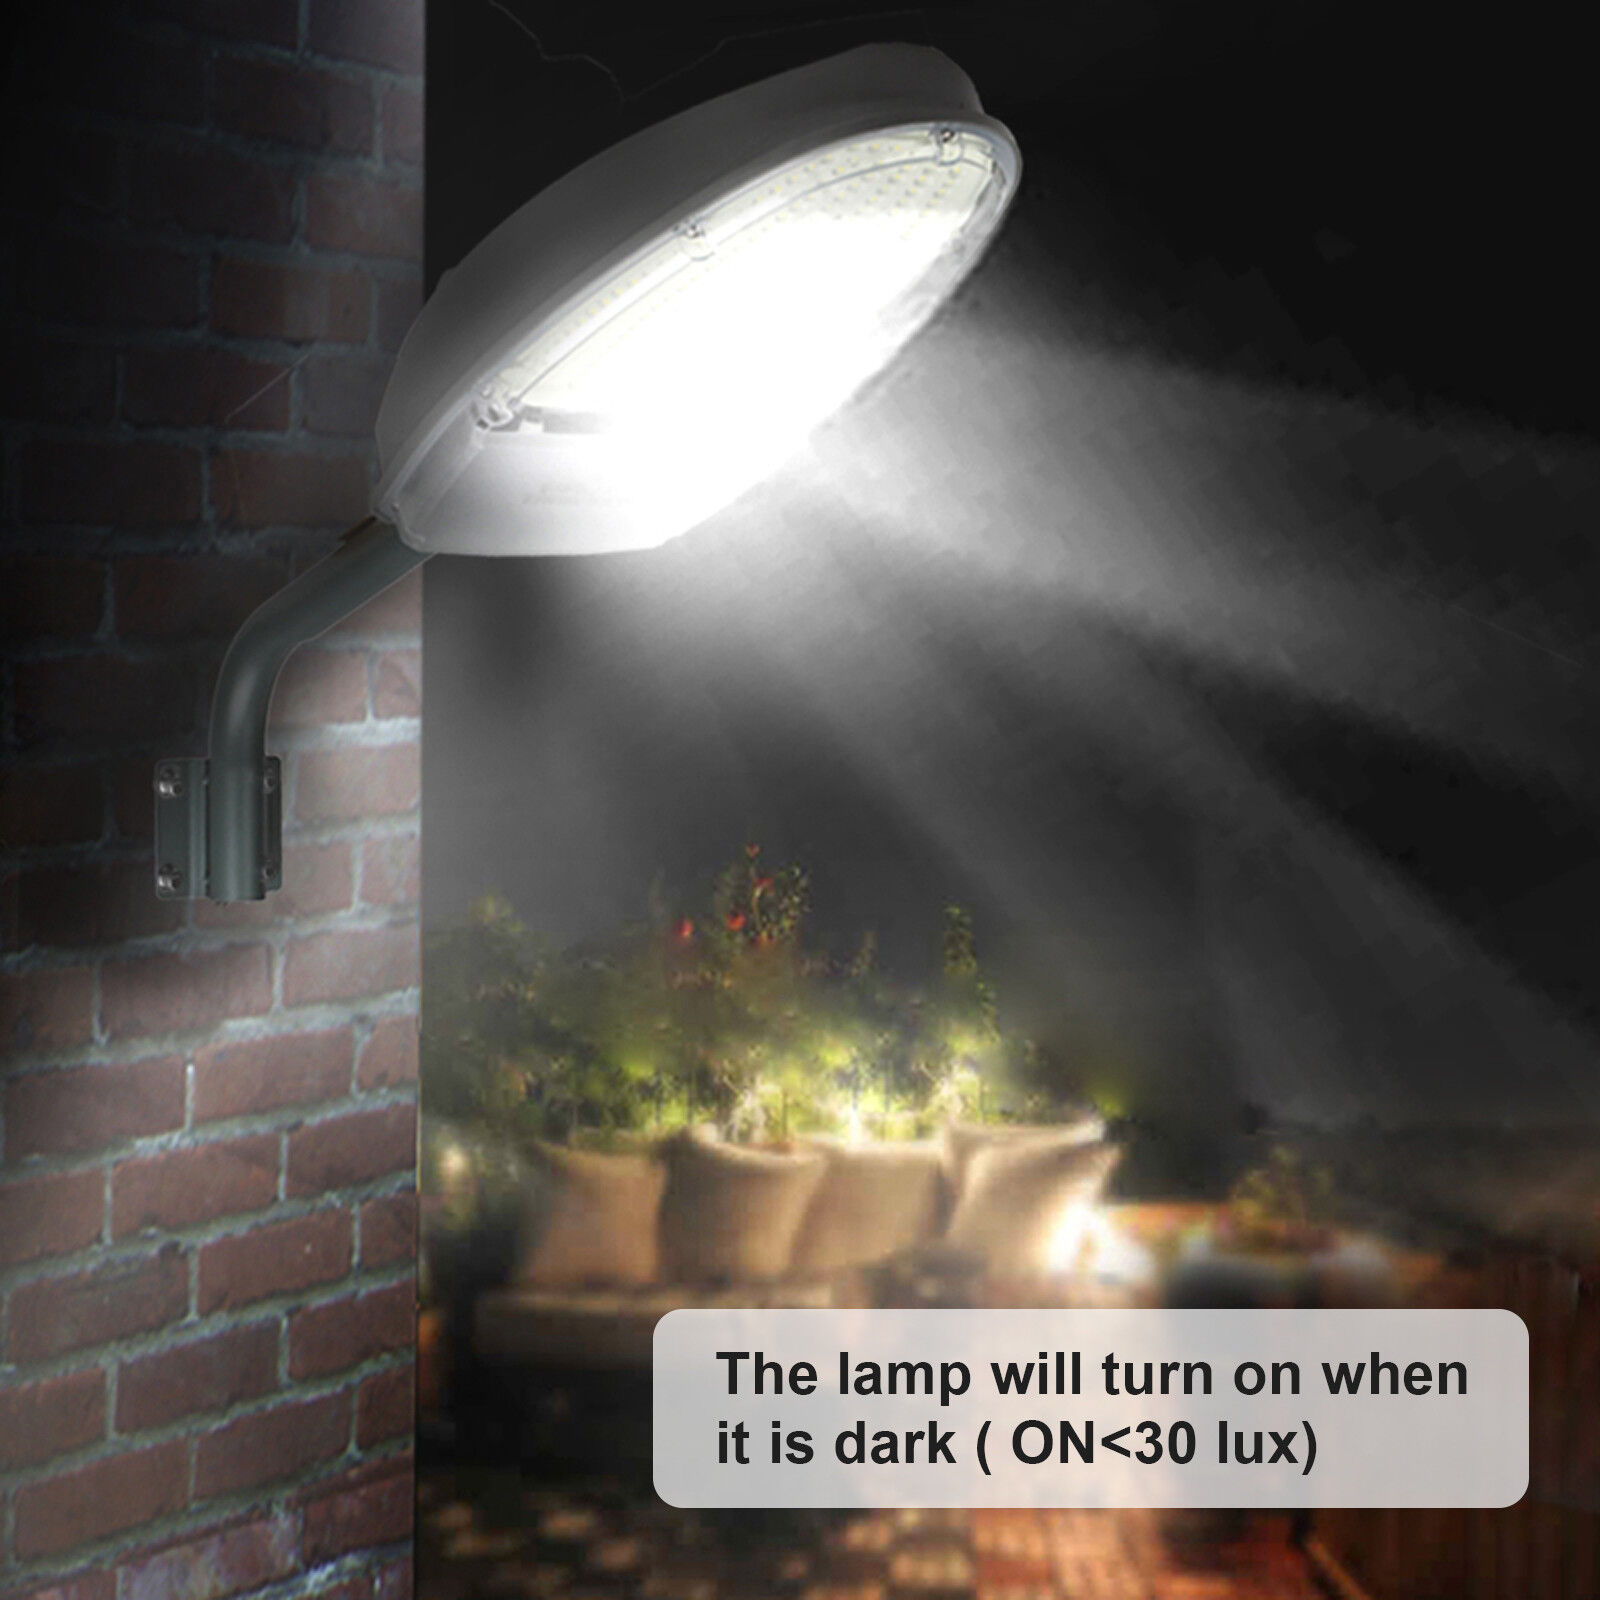 Outdoor LED Street Light 2500LM Dusk to Dawn Sensor Waterproof Security Lighting 3